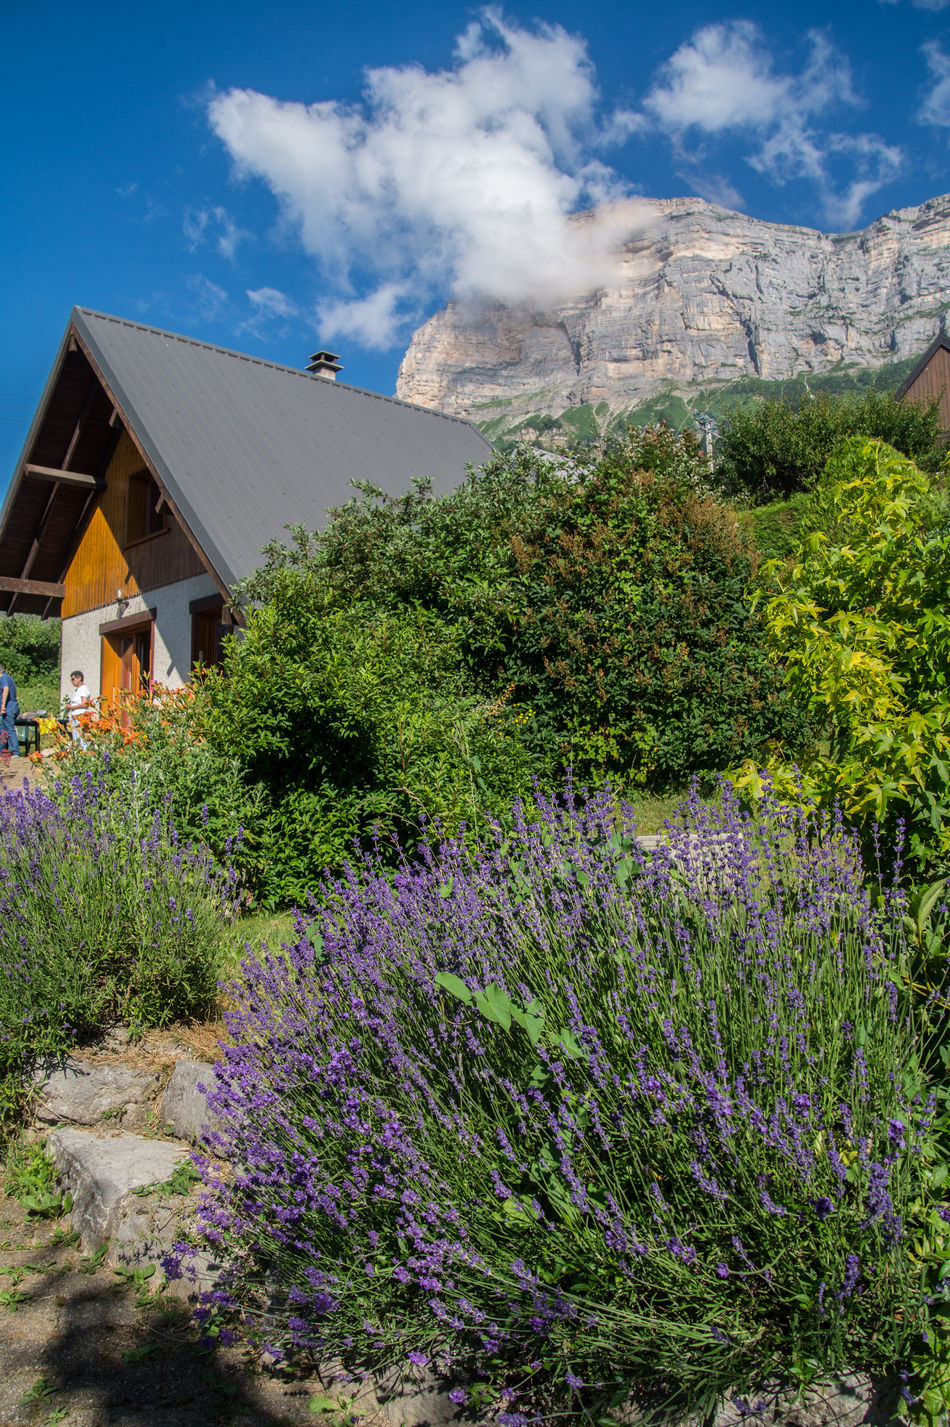 saint hilaire du touvet,isere,france' Alp Alpen Architecture Beauty In Nature Blue Building Exterior Built Structure Chartreuse  Cloud Cloud - Sky Day Footpath Green Color Growing Growth House Houses In Front Of Mountain Mountains Nature No People Outdoors Plant Sky